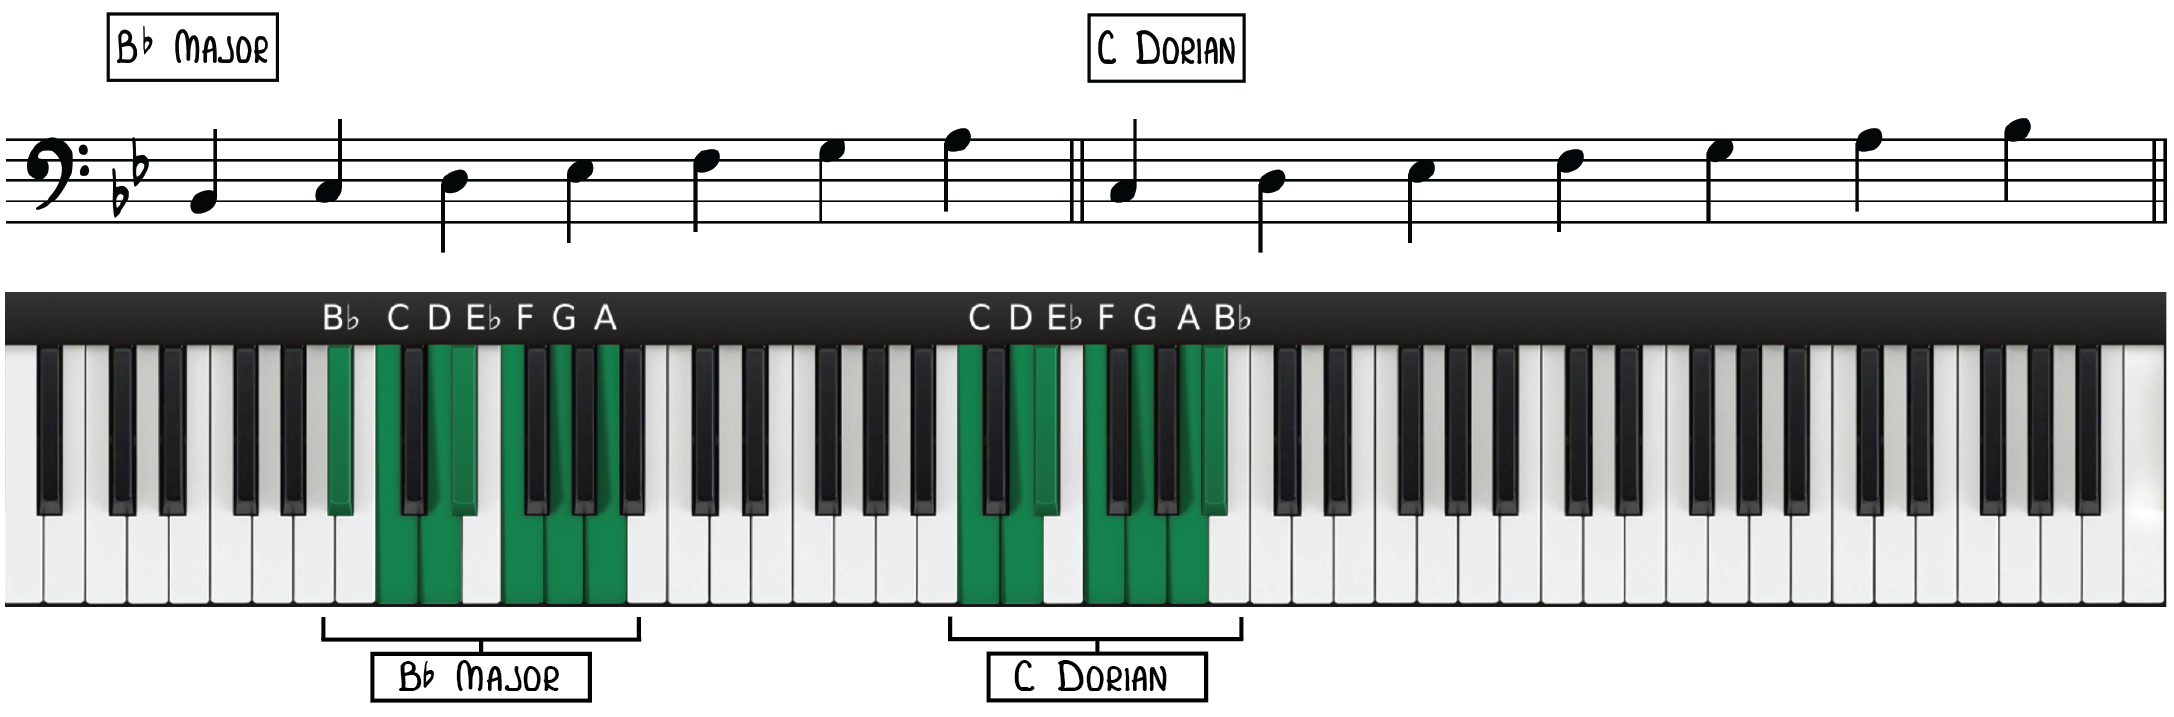 Bb Major & C Dorian Mode